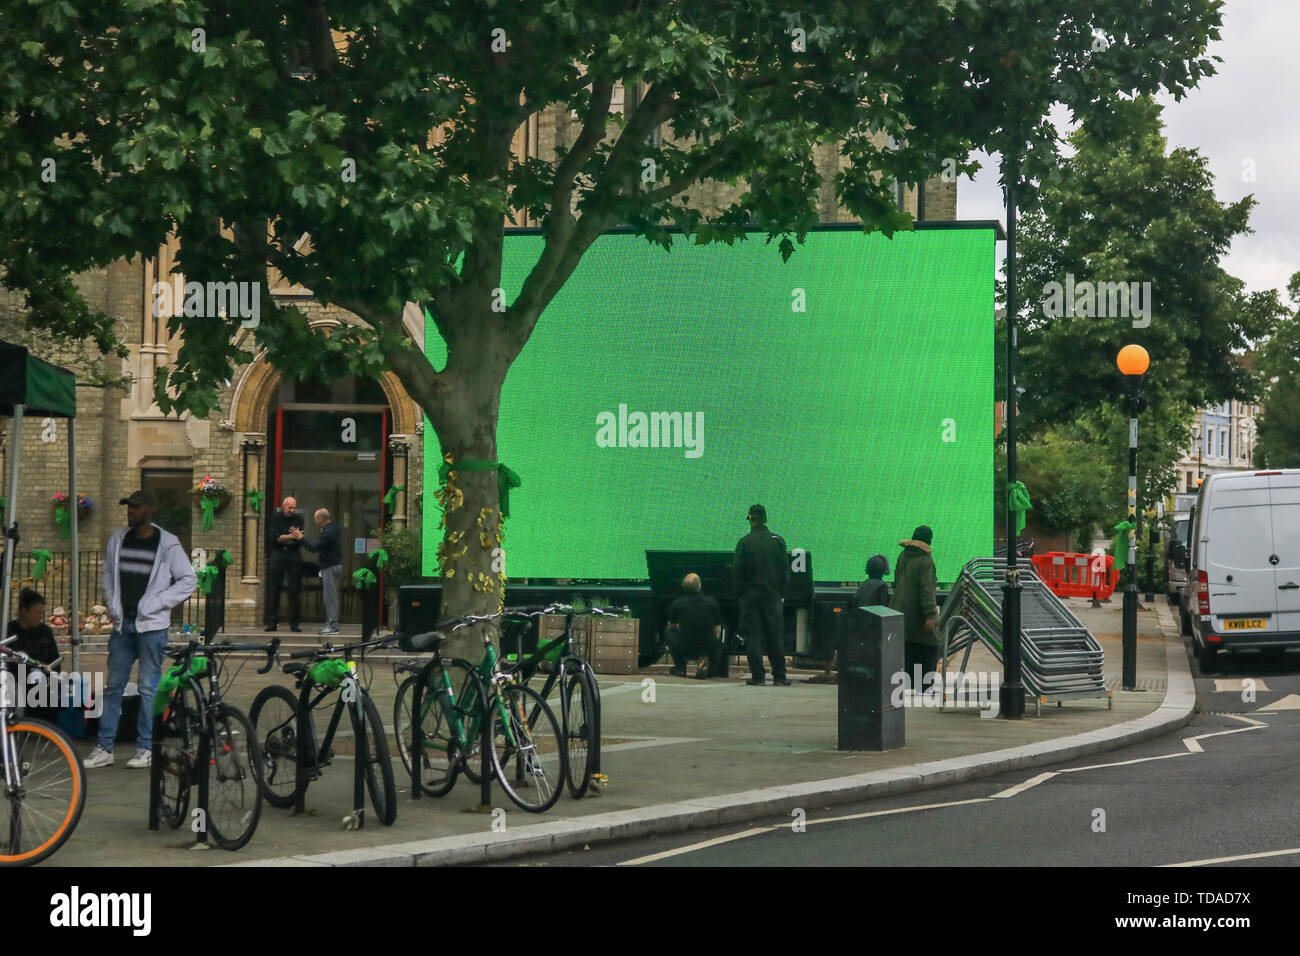 London, UK. 13th June, 2019. A large screen projecting green colour on the second anniversary of the devastating inferno fire which in the residential tower block in West London within the borough of Kensington and Chelsea on 14 June 2017 Credit: amer ghazzal/Alamy Live News - Stock Image